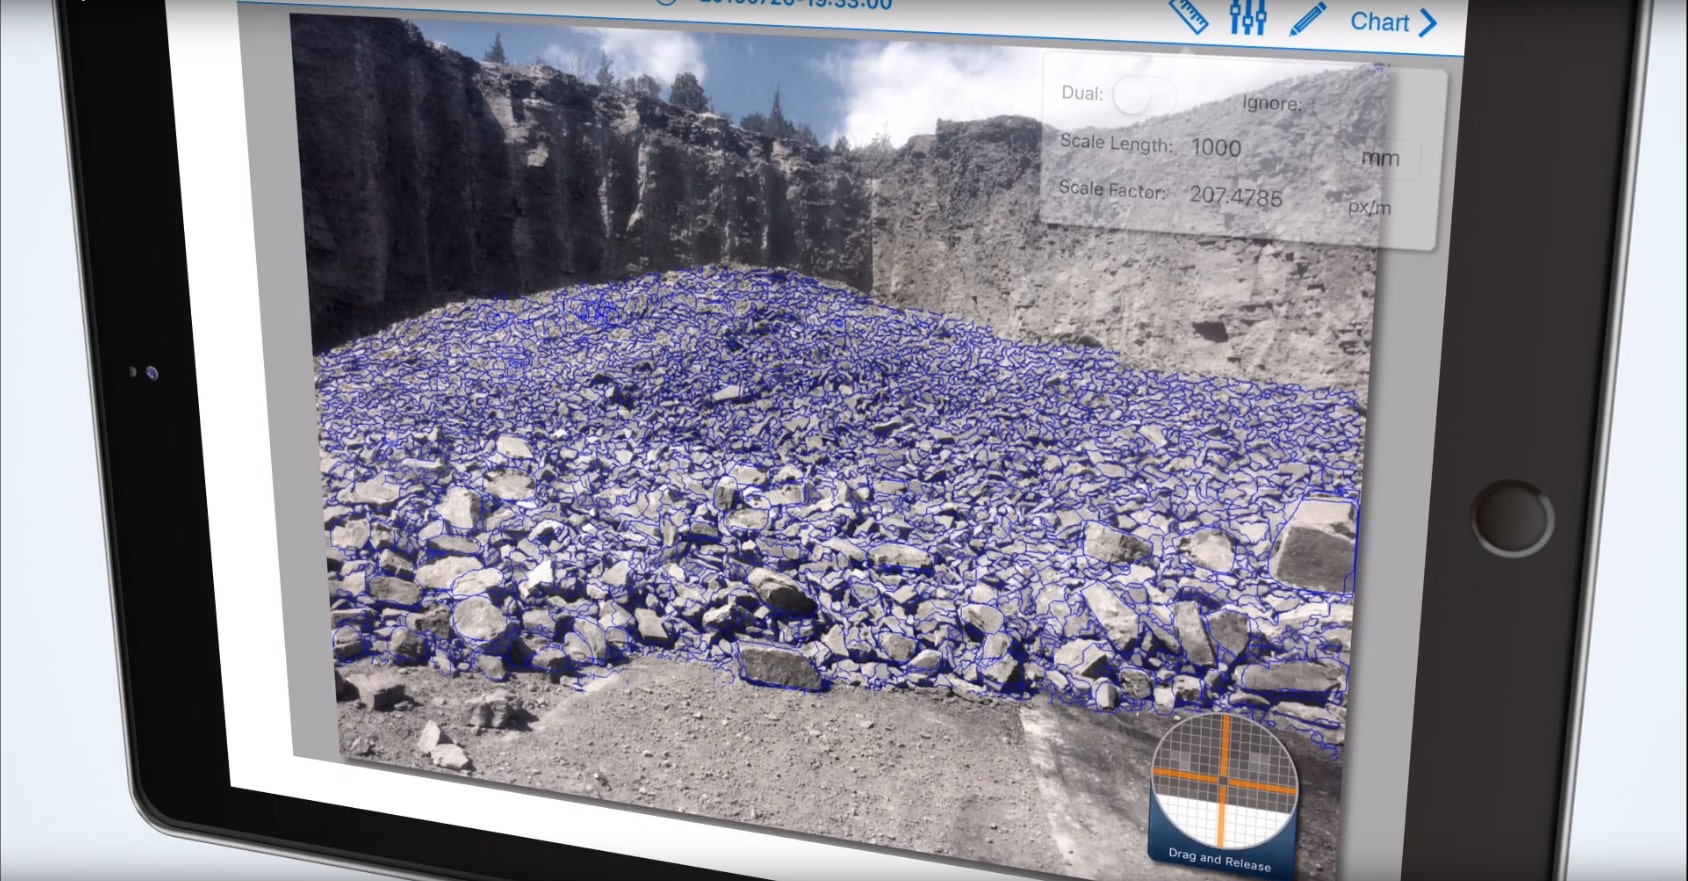 Fragmentation Analysis performed on a rock pile using WipFrag - fragmentation analysis software